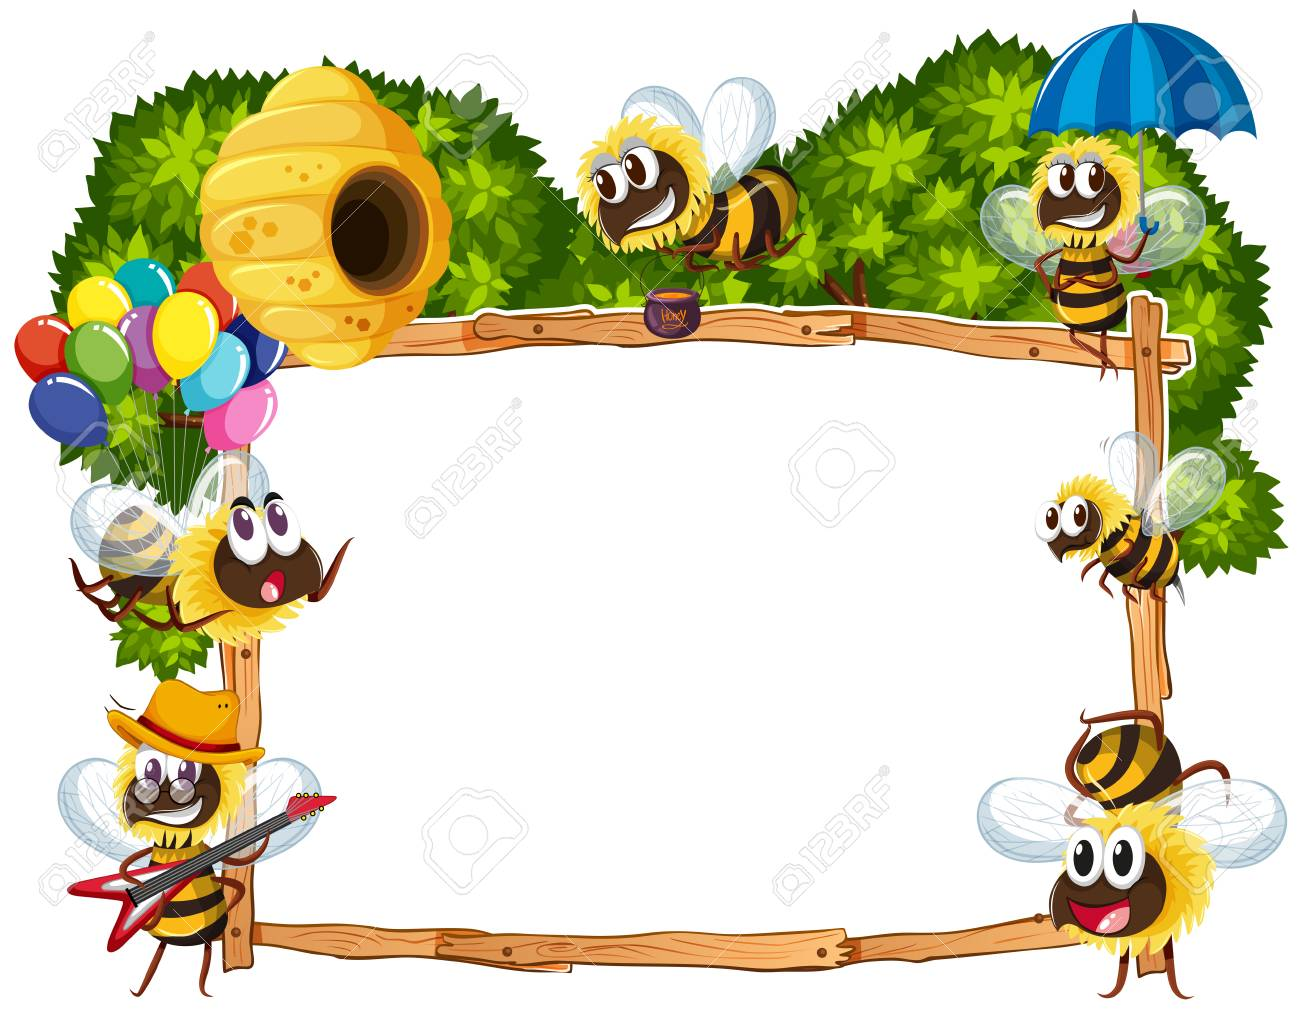 Border template with bees flying illustration.